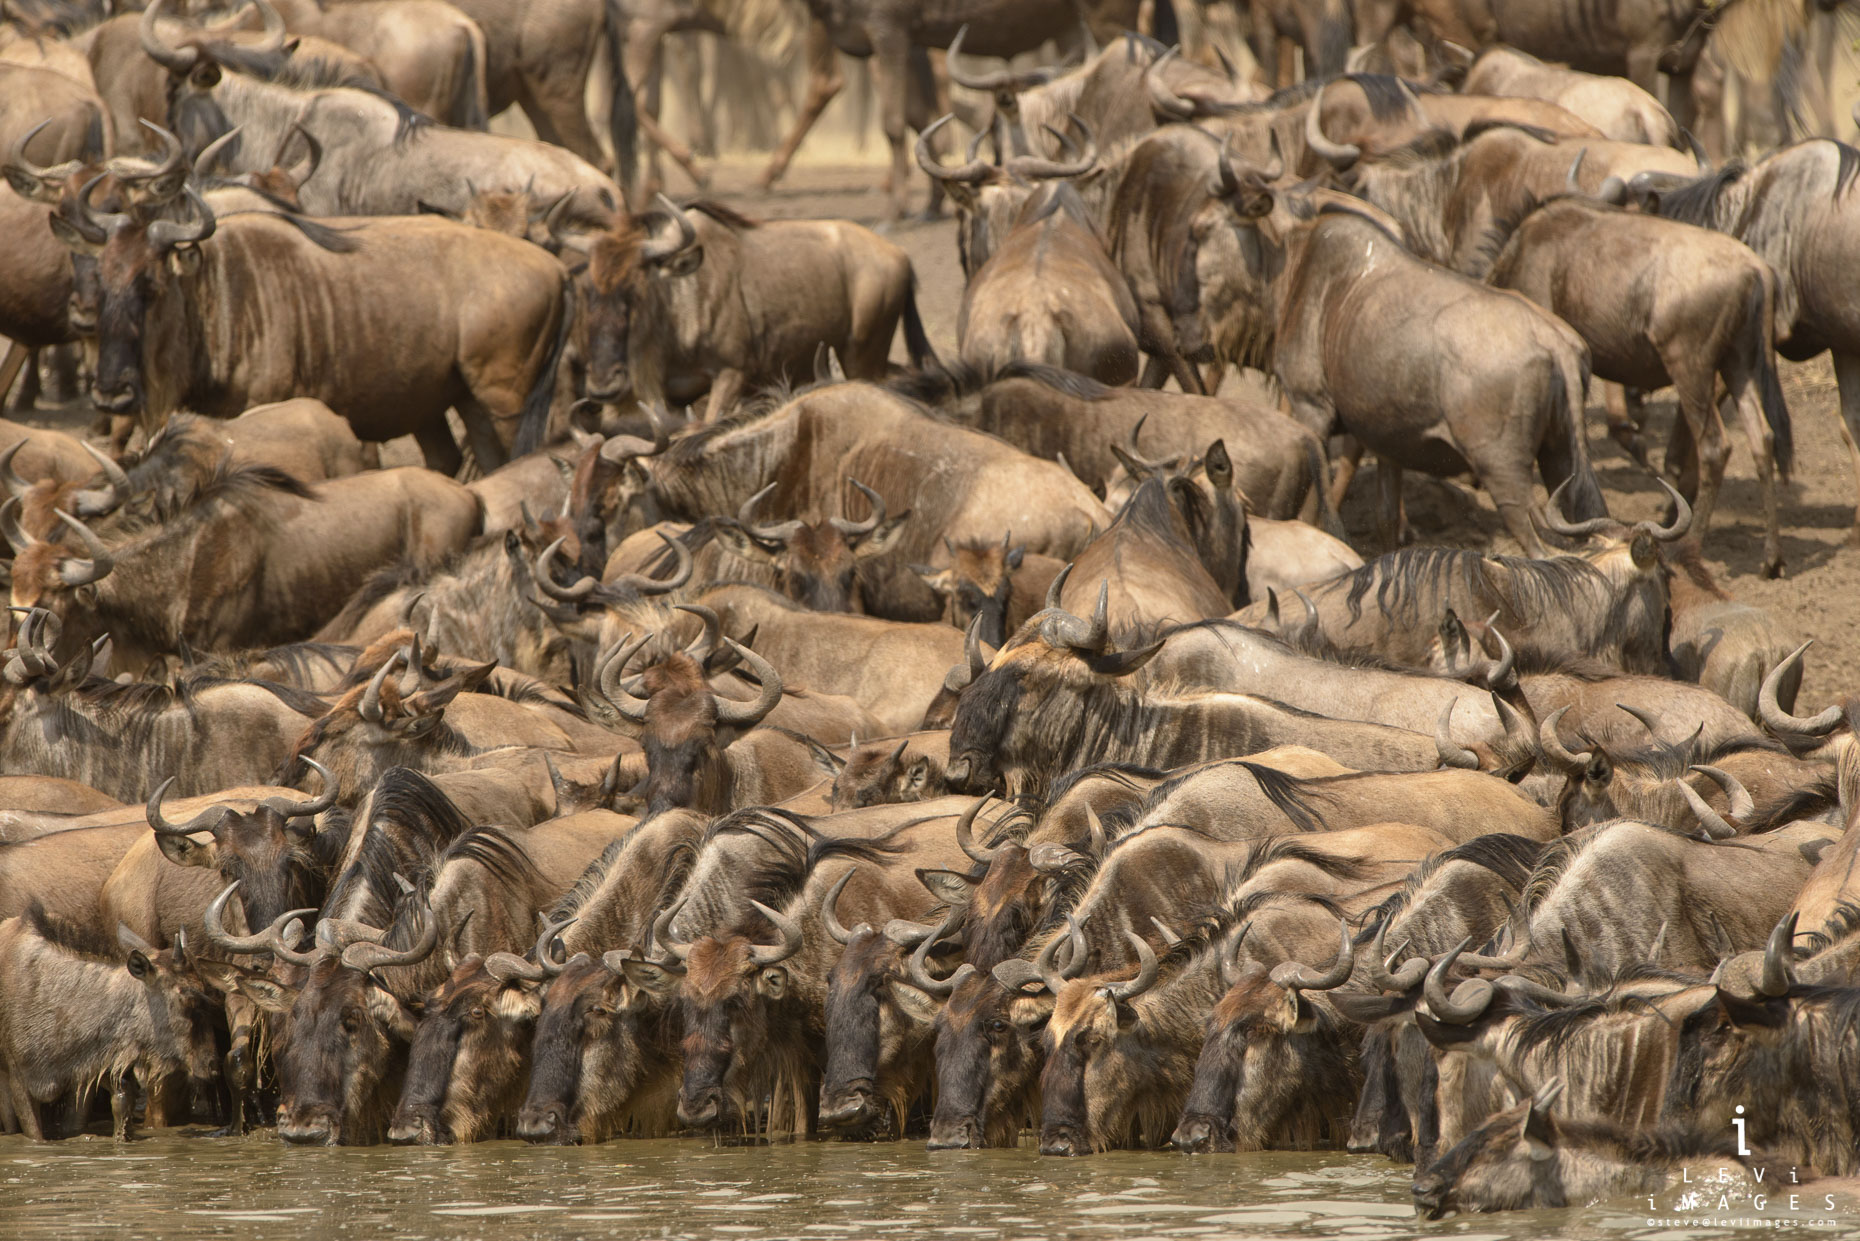 Wildebeests (Connochaetes taurinus) lined up and drinking at waterhole. Serengeti Africa